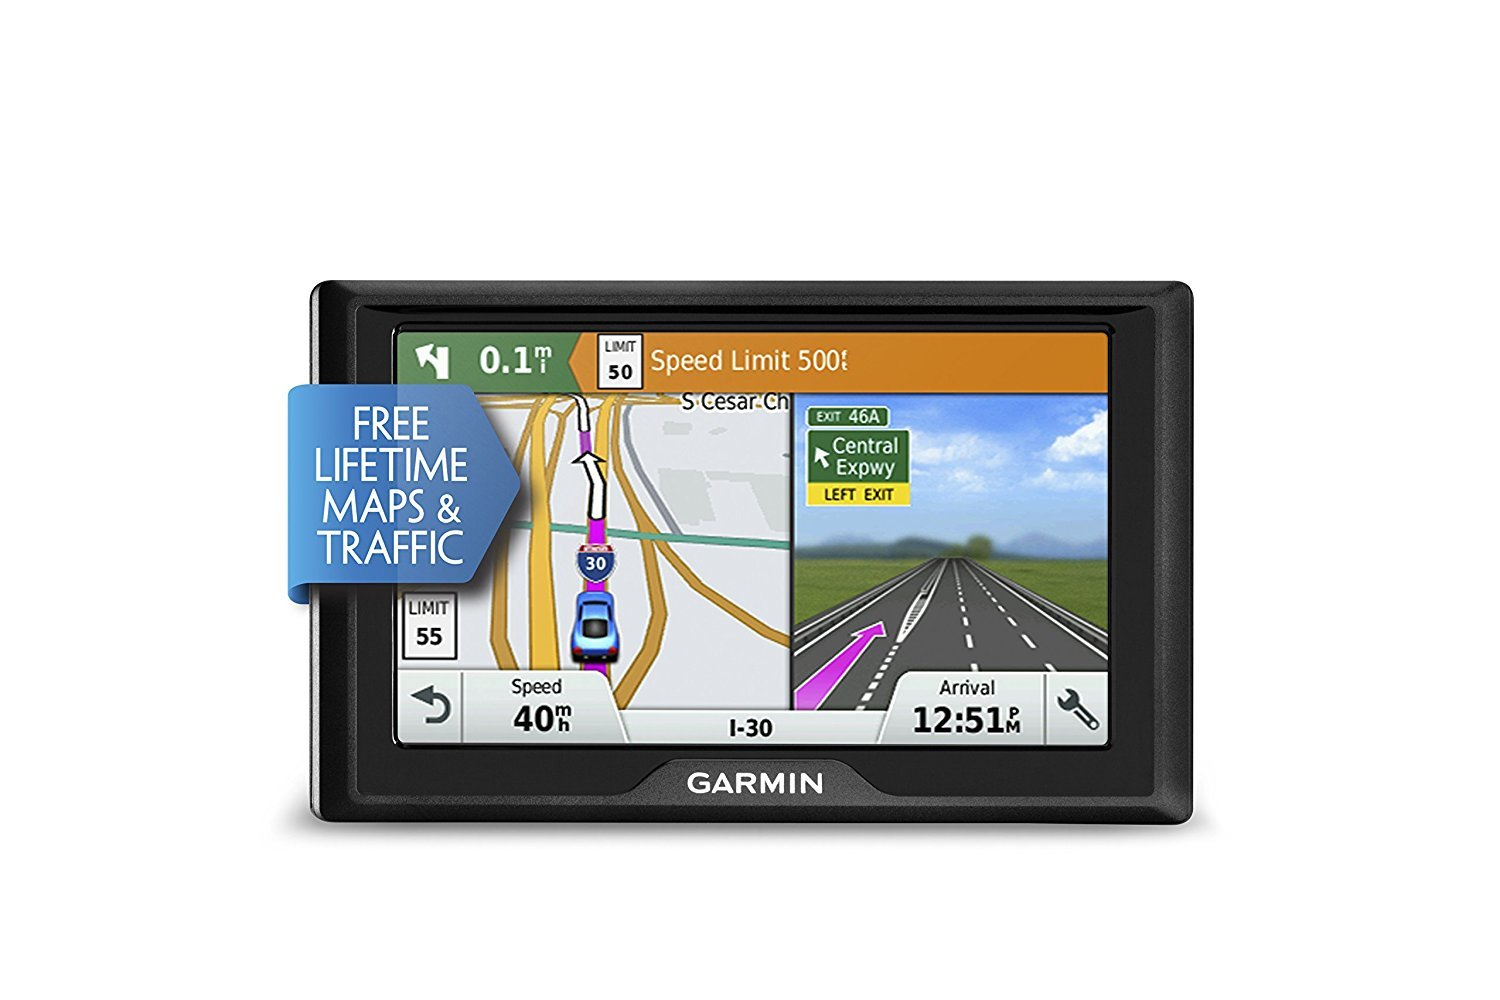 Garmin Drive 50 USA + CAN LMT GPS Navigator System with Lifetime Maps and Traffic, Driver Alerts, Direct Access, and Foursquare data (Renewed) by Garmin